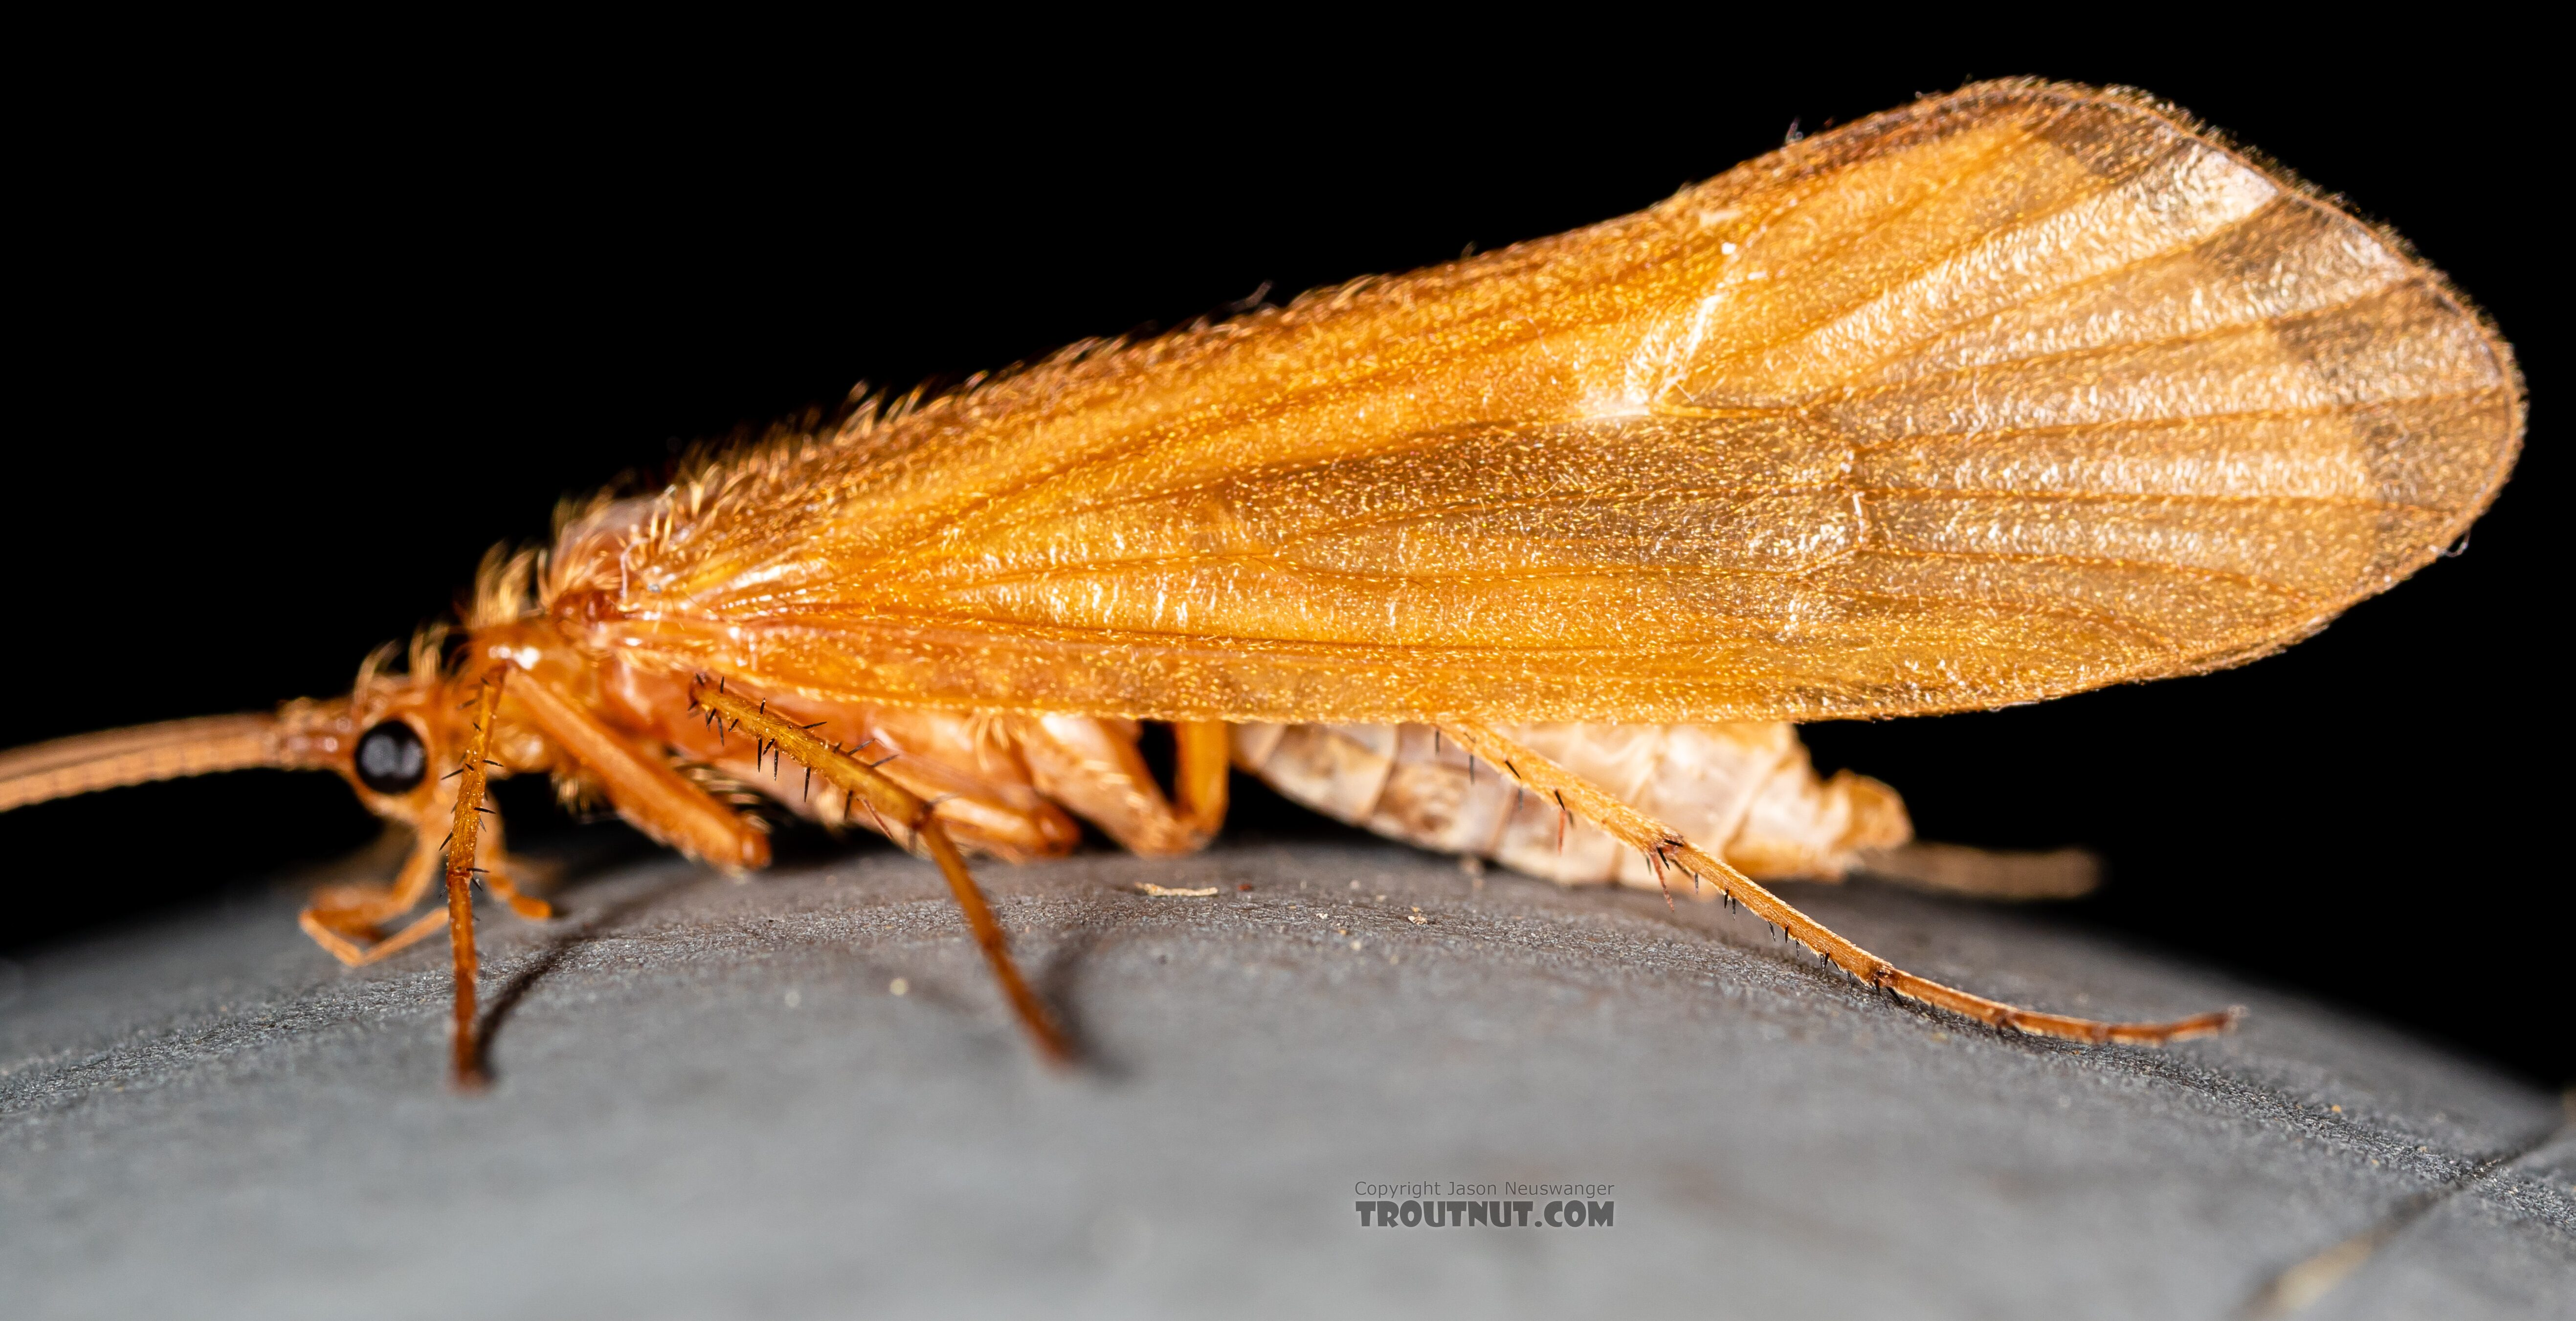 Trichoptera (Caddisflies) Caddisfly Adult from Trealtor Creek in Idaho